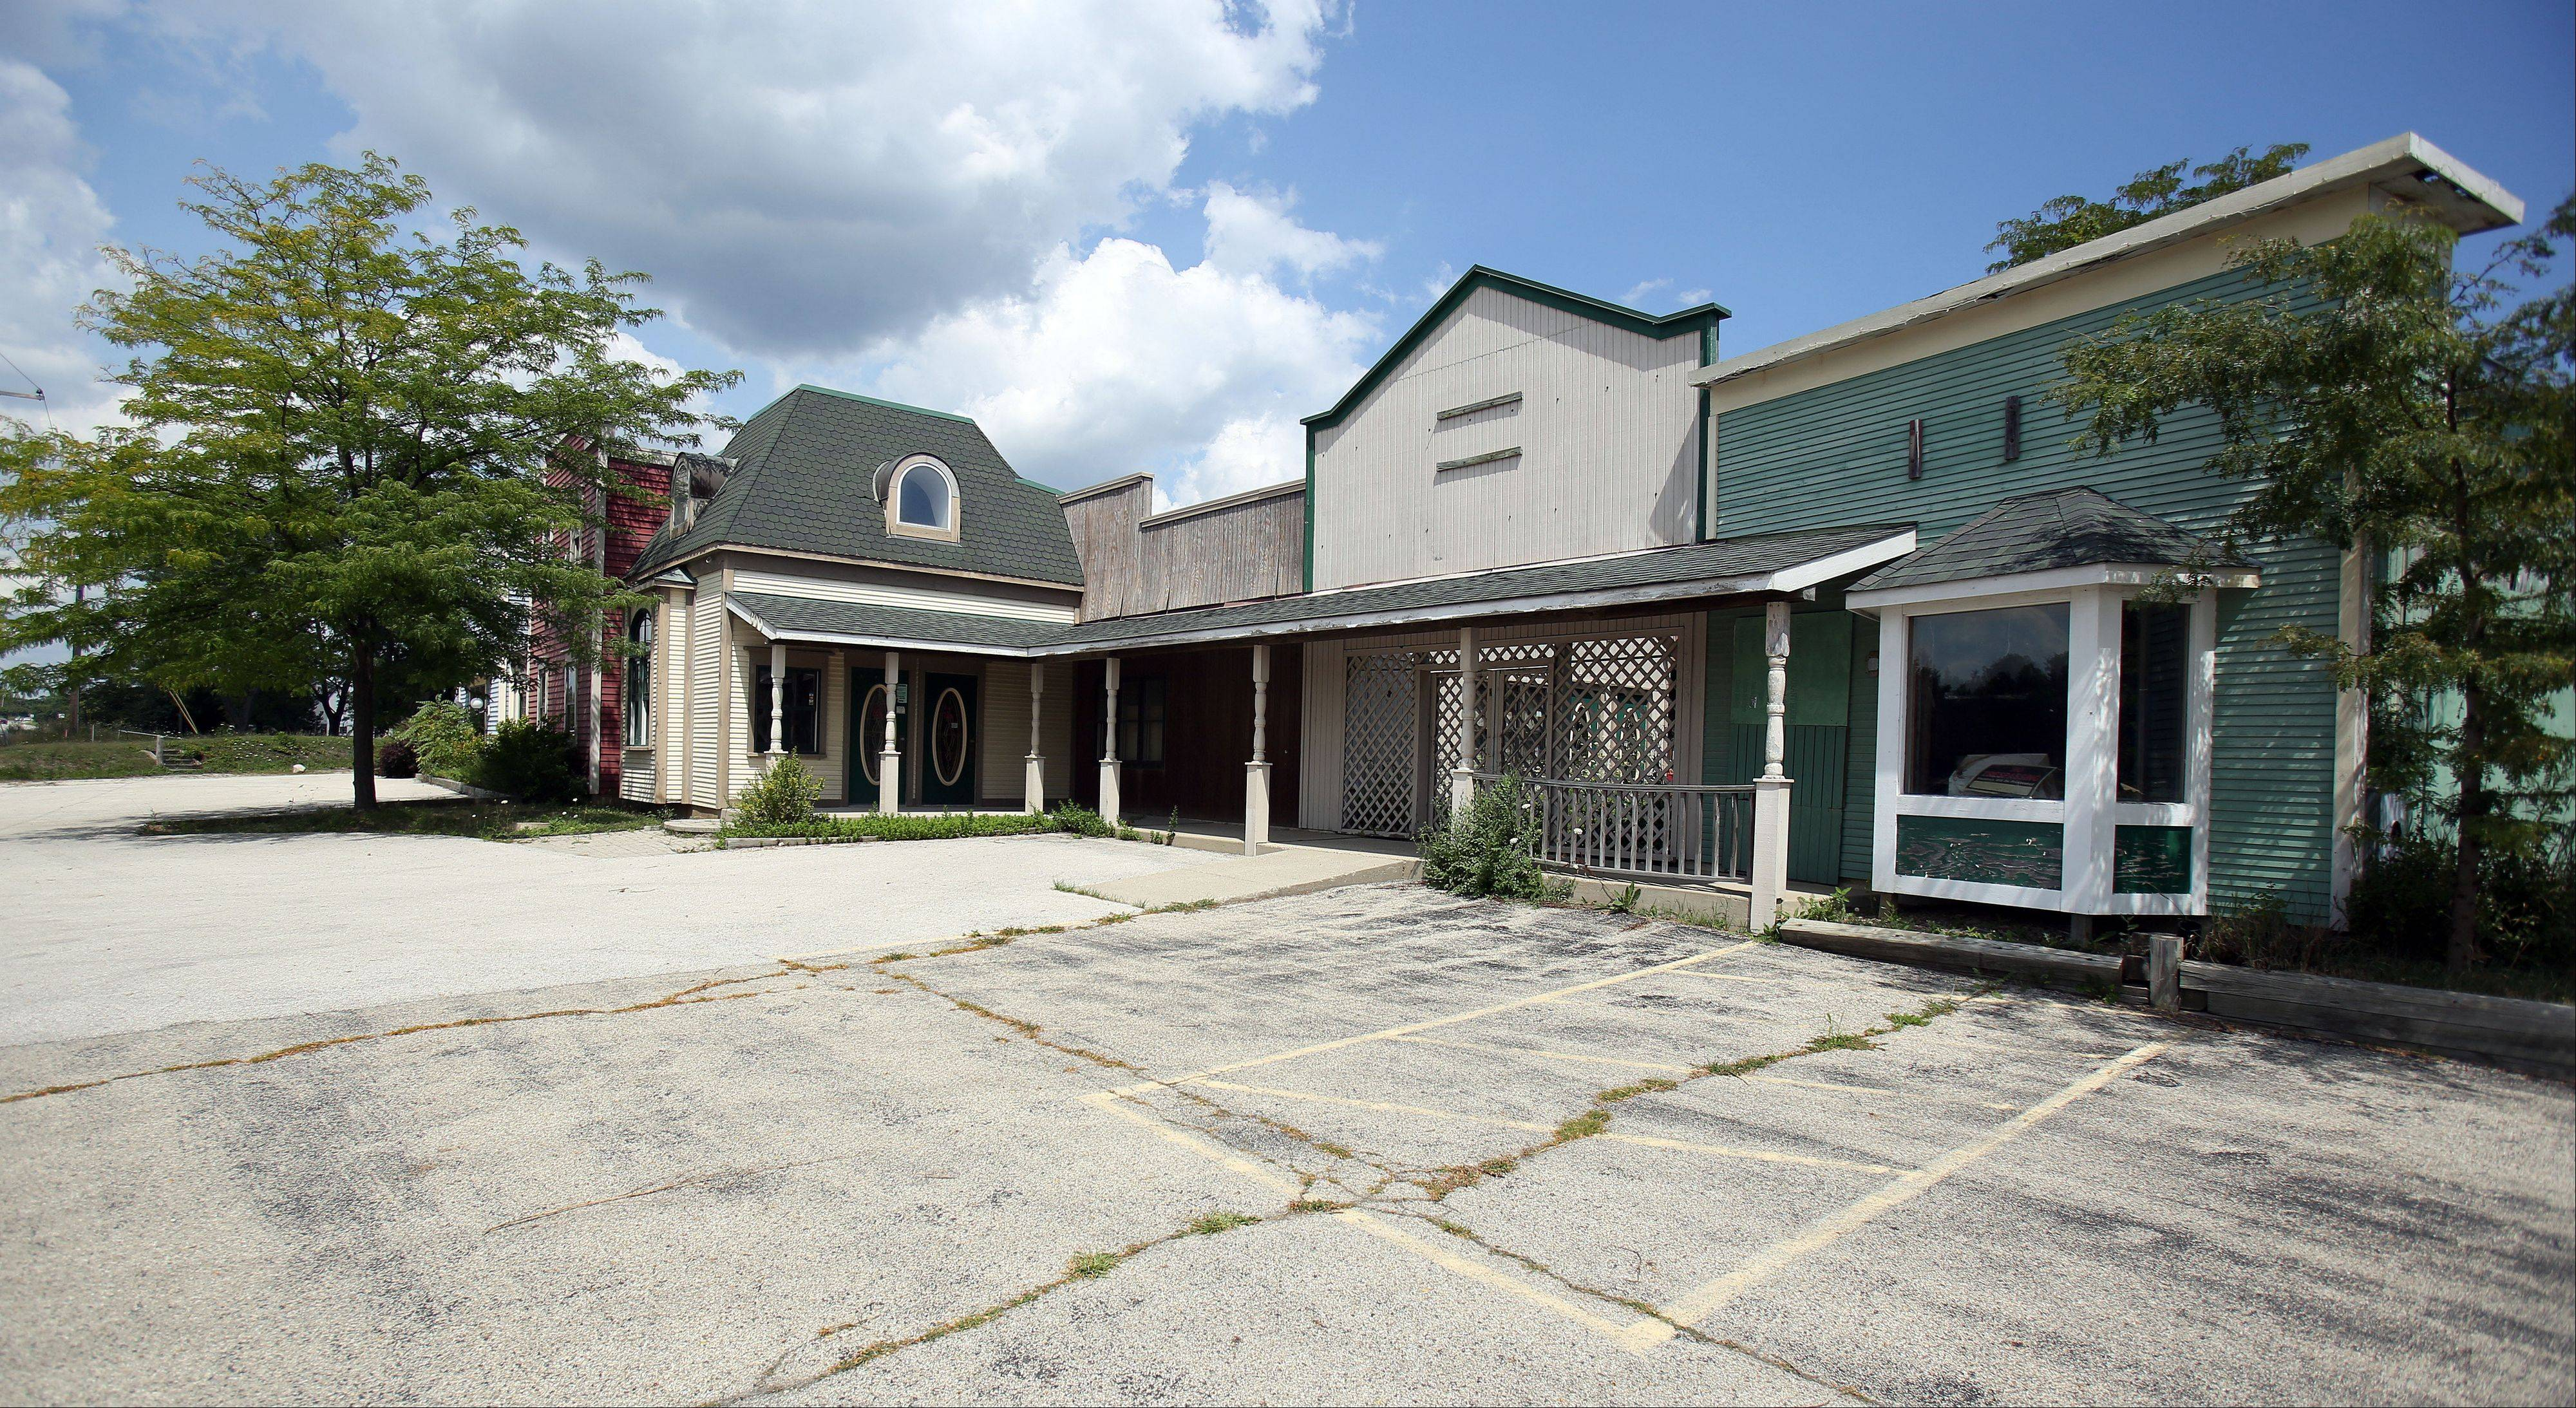 The commercial portion of the former Quig's Orchard on Route 83 in Mundelein, including the country store and restaurant, has been vacant for several years.